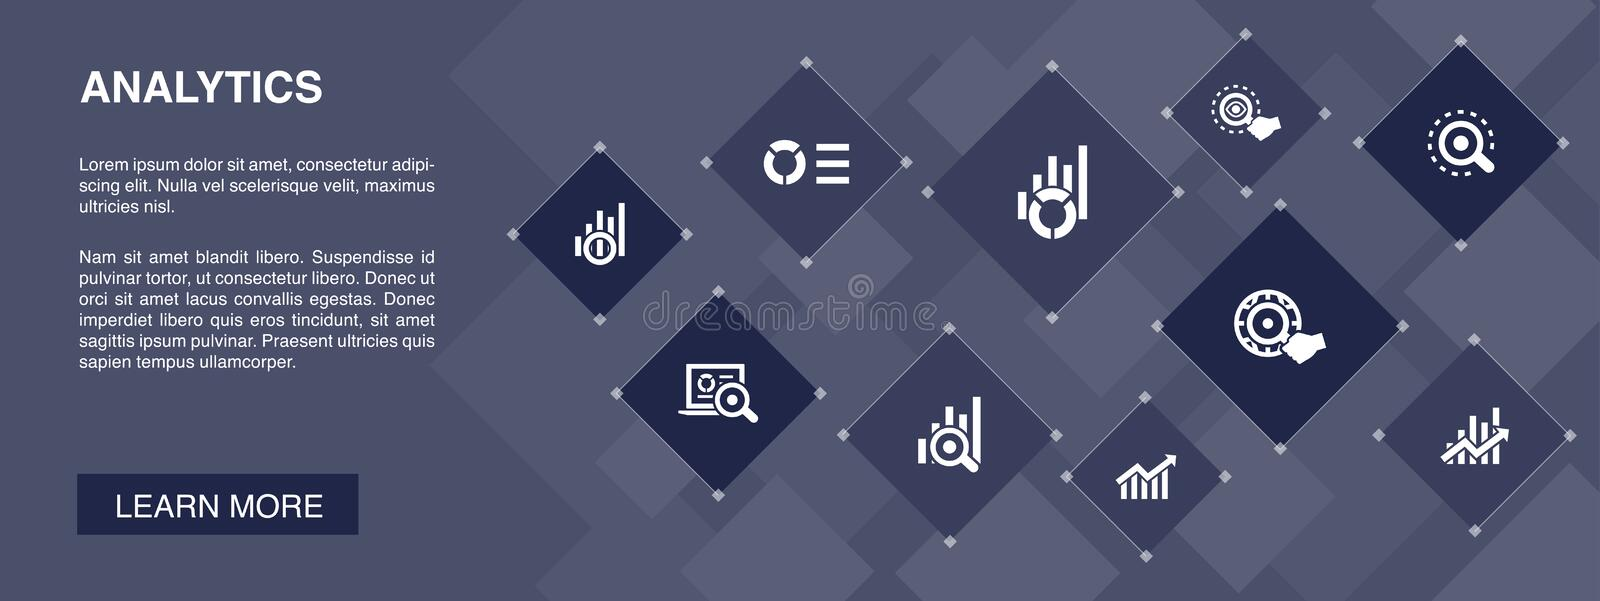 Analytics banner 10 icons concept.linear. Graph, web research, trend, monitoring simple icons stock illustration